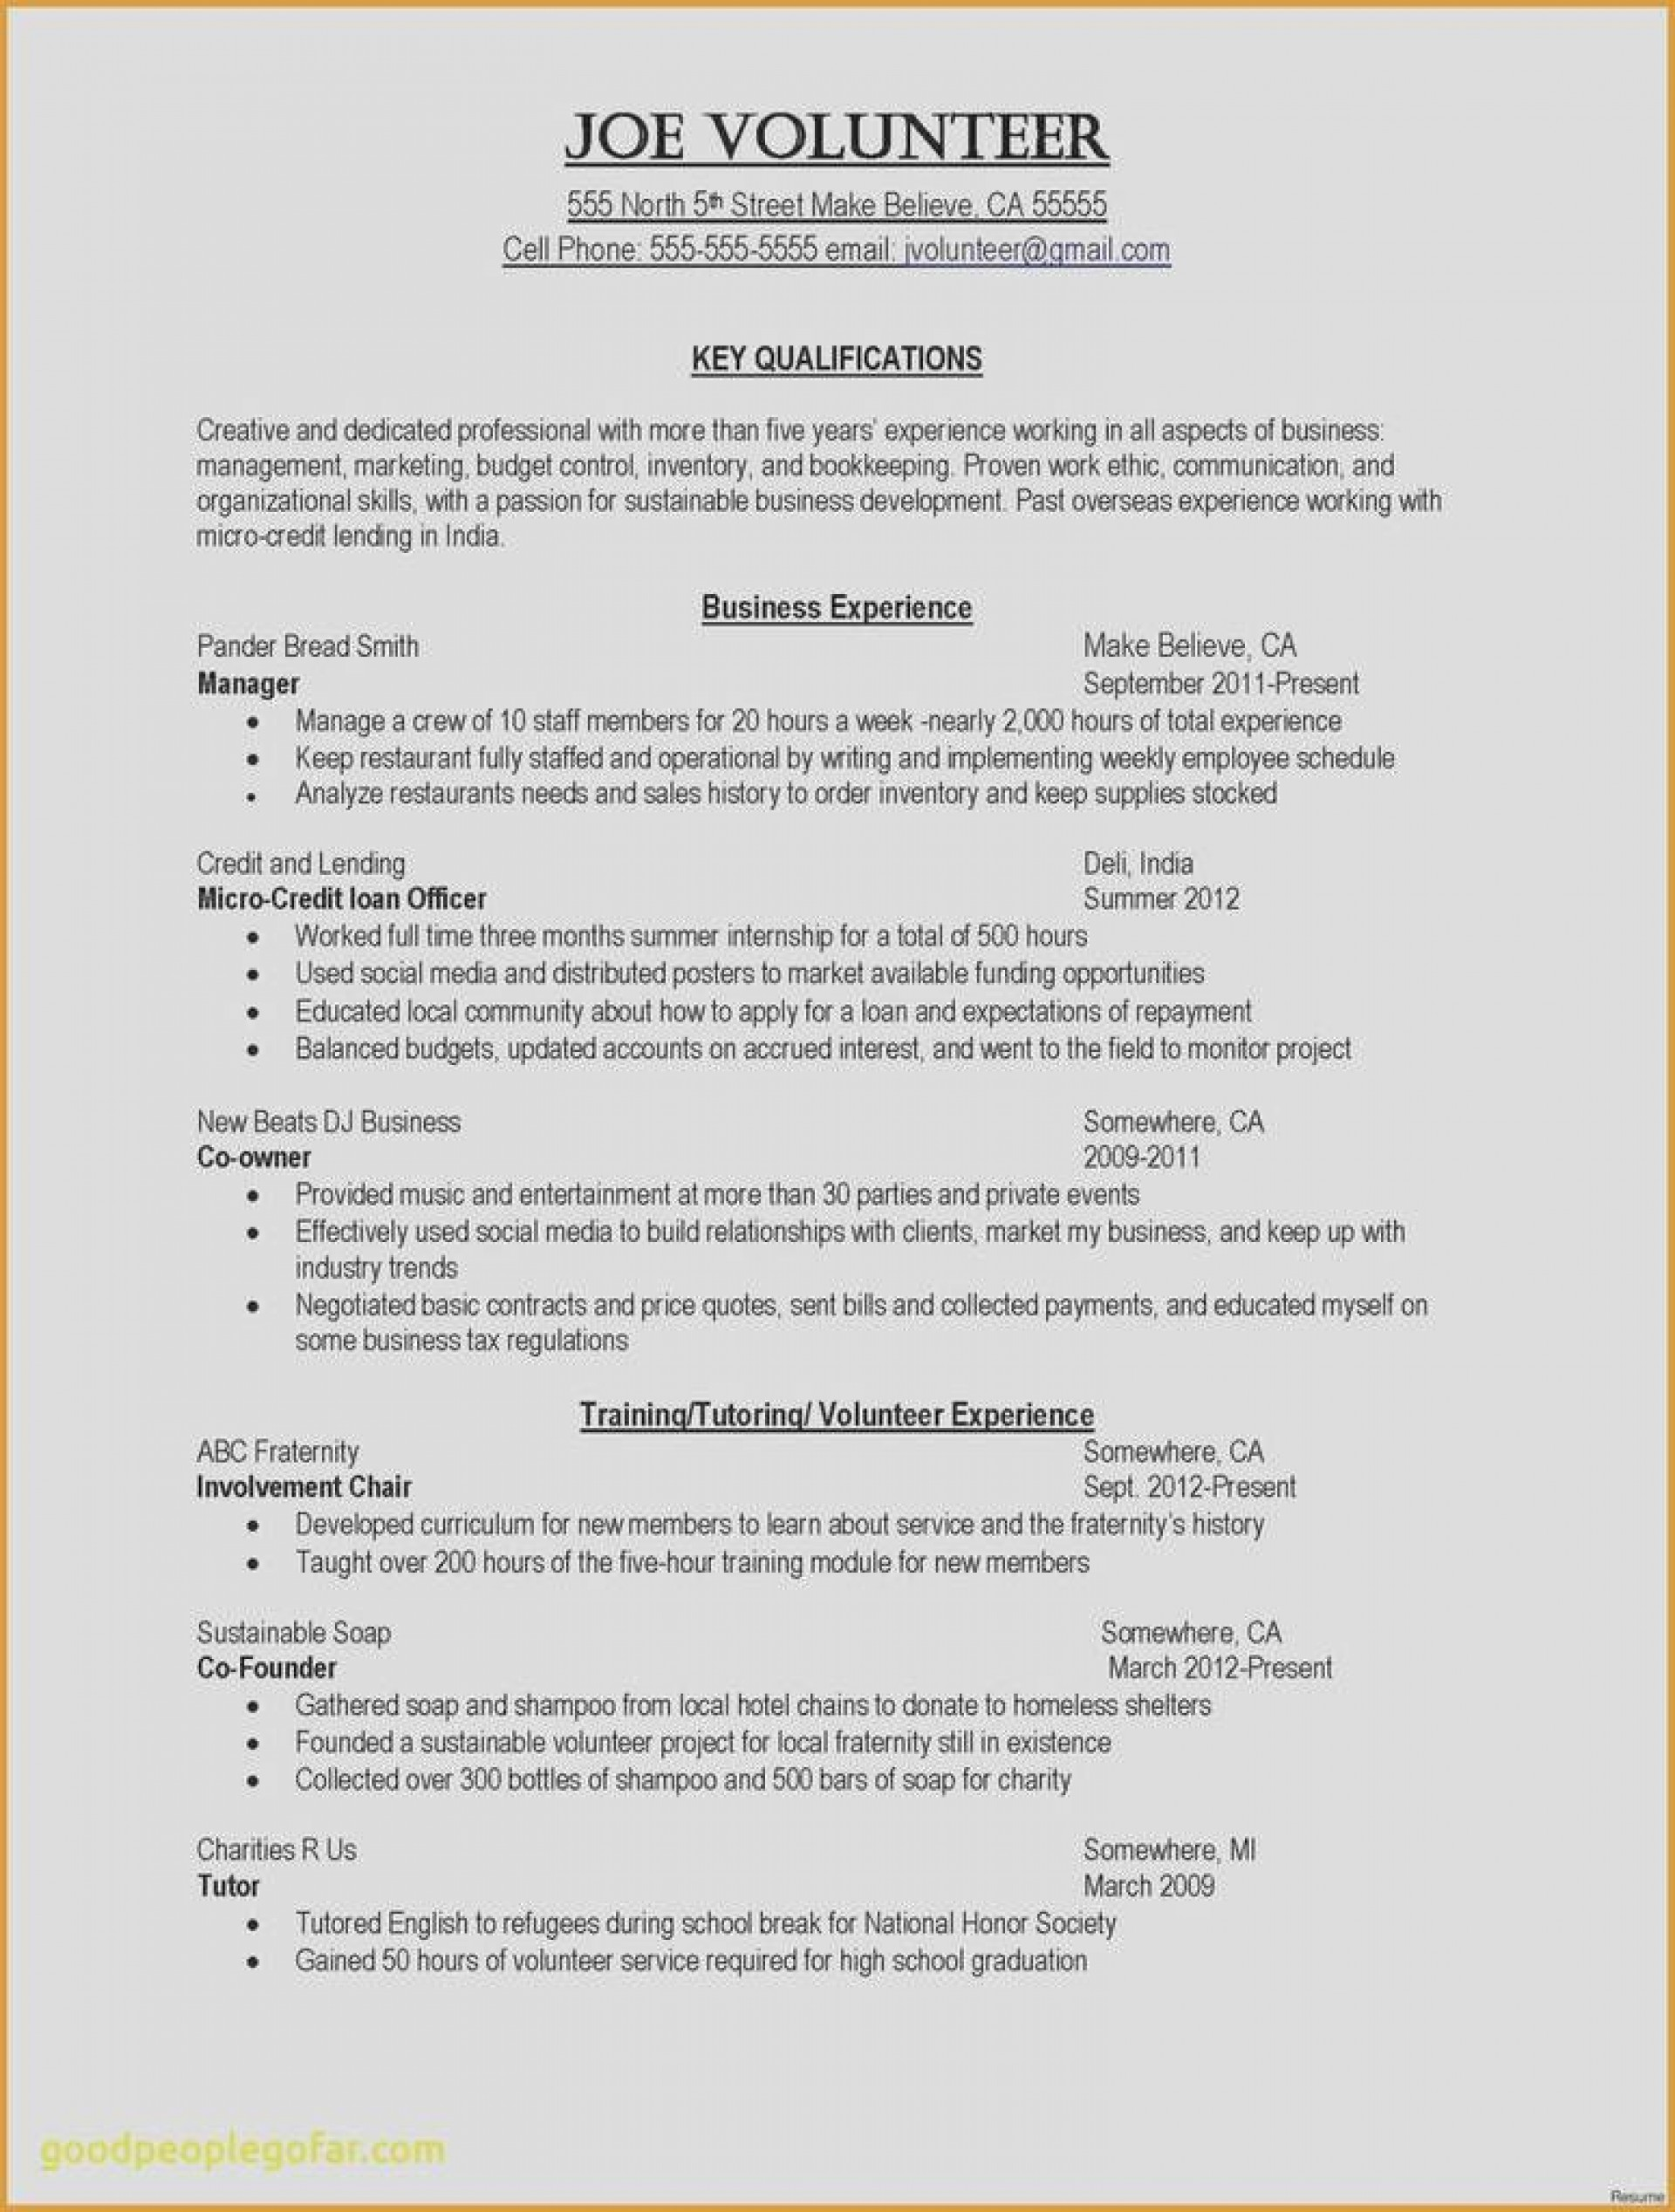 004 Stunning Partnership Buyout Agreement Template Design  Buy Sell Small Busines Form1920